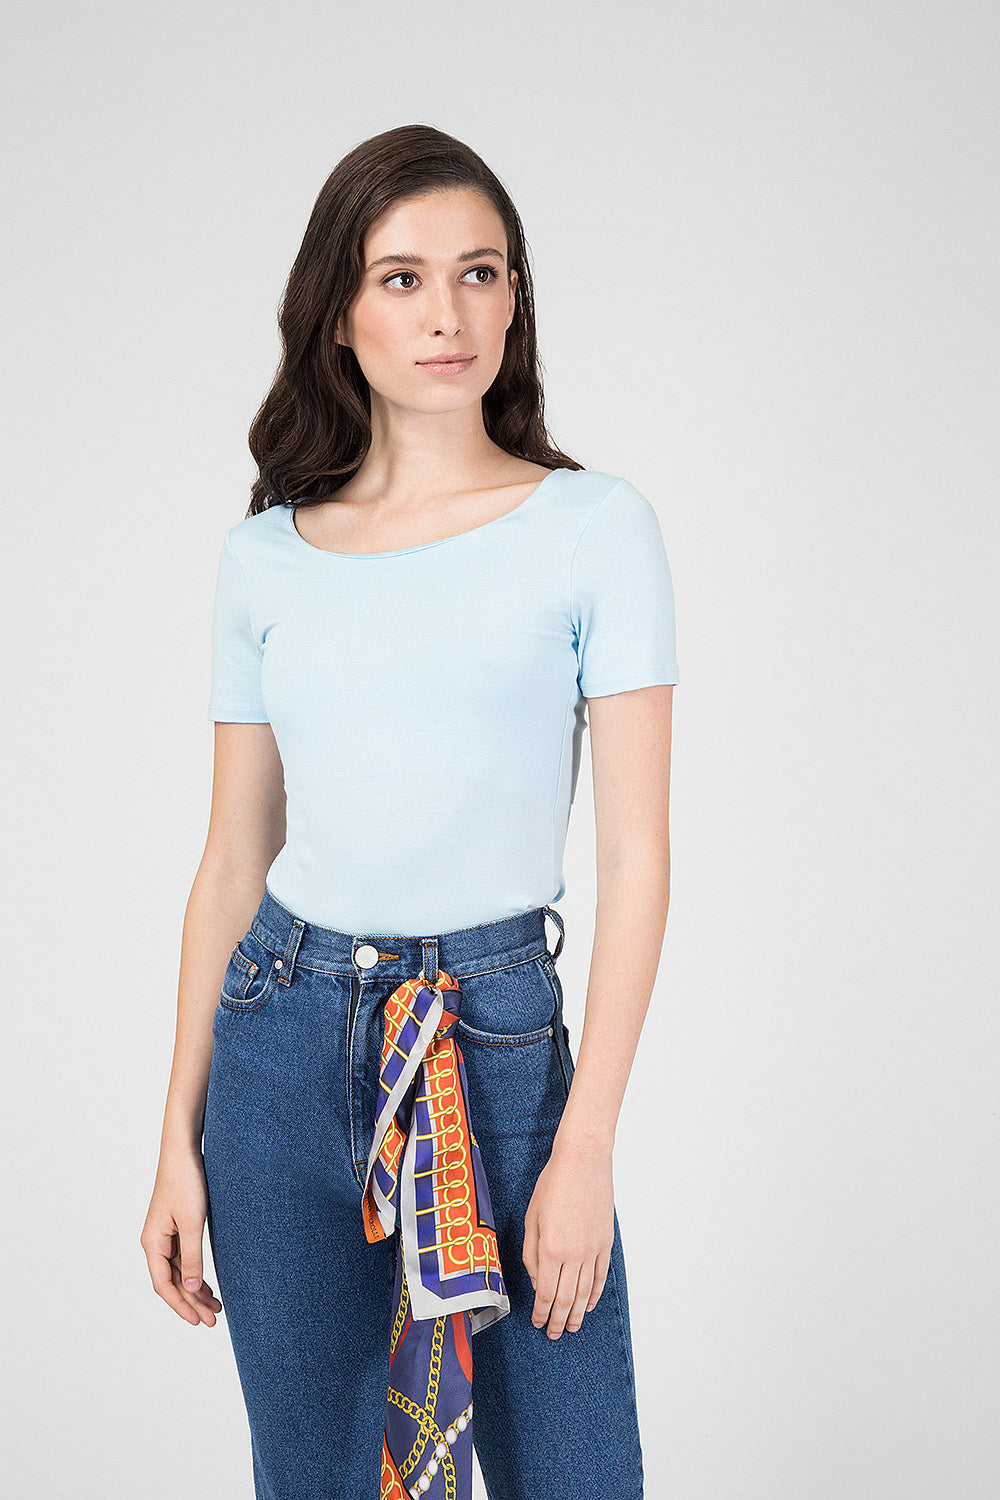 Blue top with short sleeves